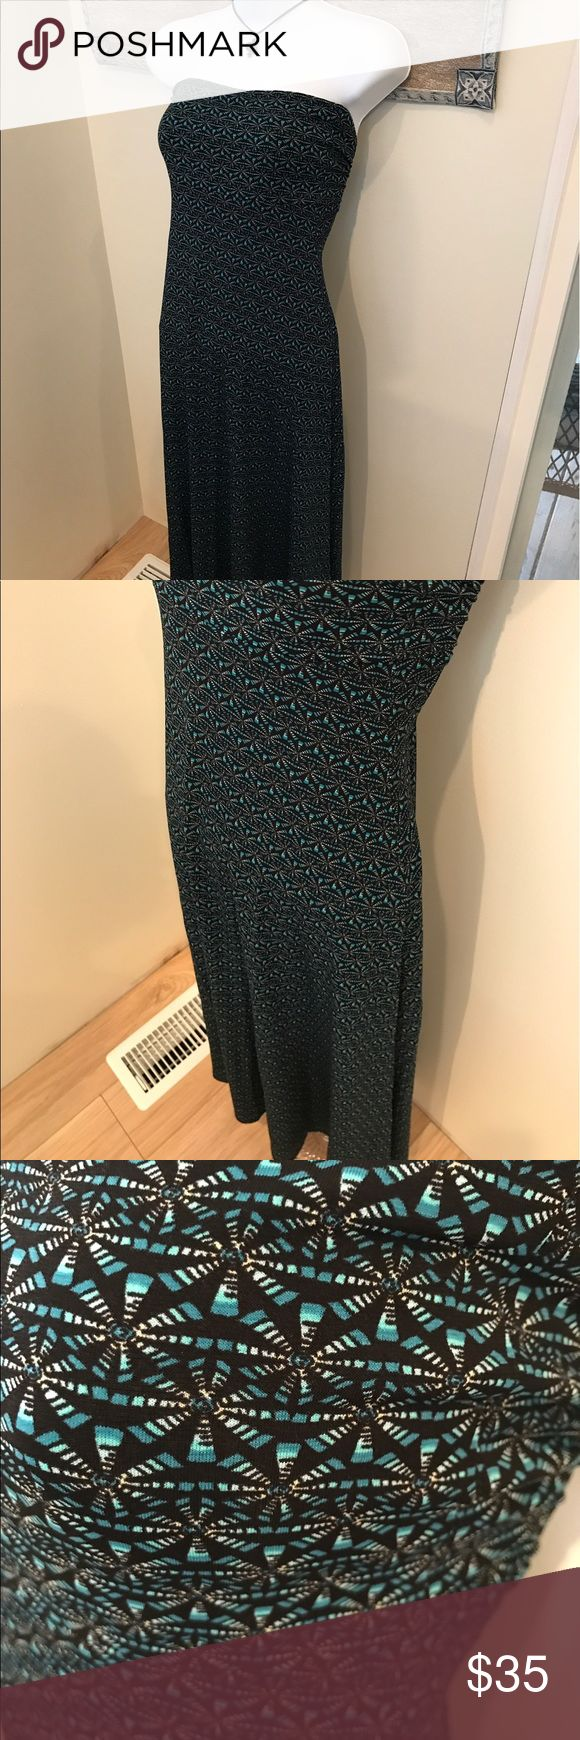 EUC XS Lularoe Teal & Black Maxi Skirt EUC Lularoe Maxi Dress / Skirt Excellent condition, worn maybe once and washed per LLR Black background with teal and white Slinky material Nonsmoking home LuLaRoe Skirts Maxi